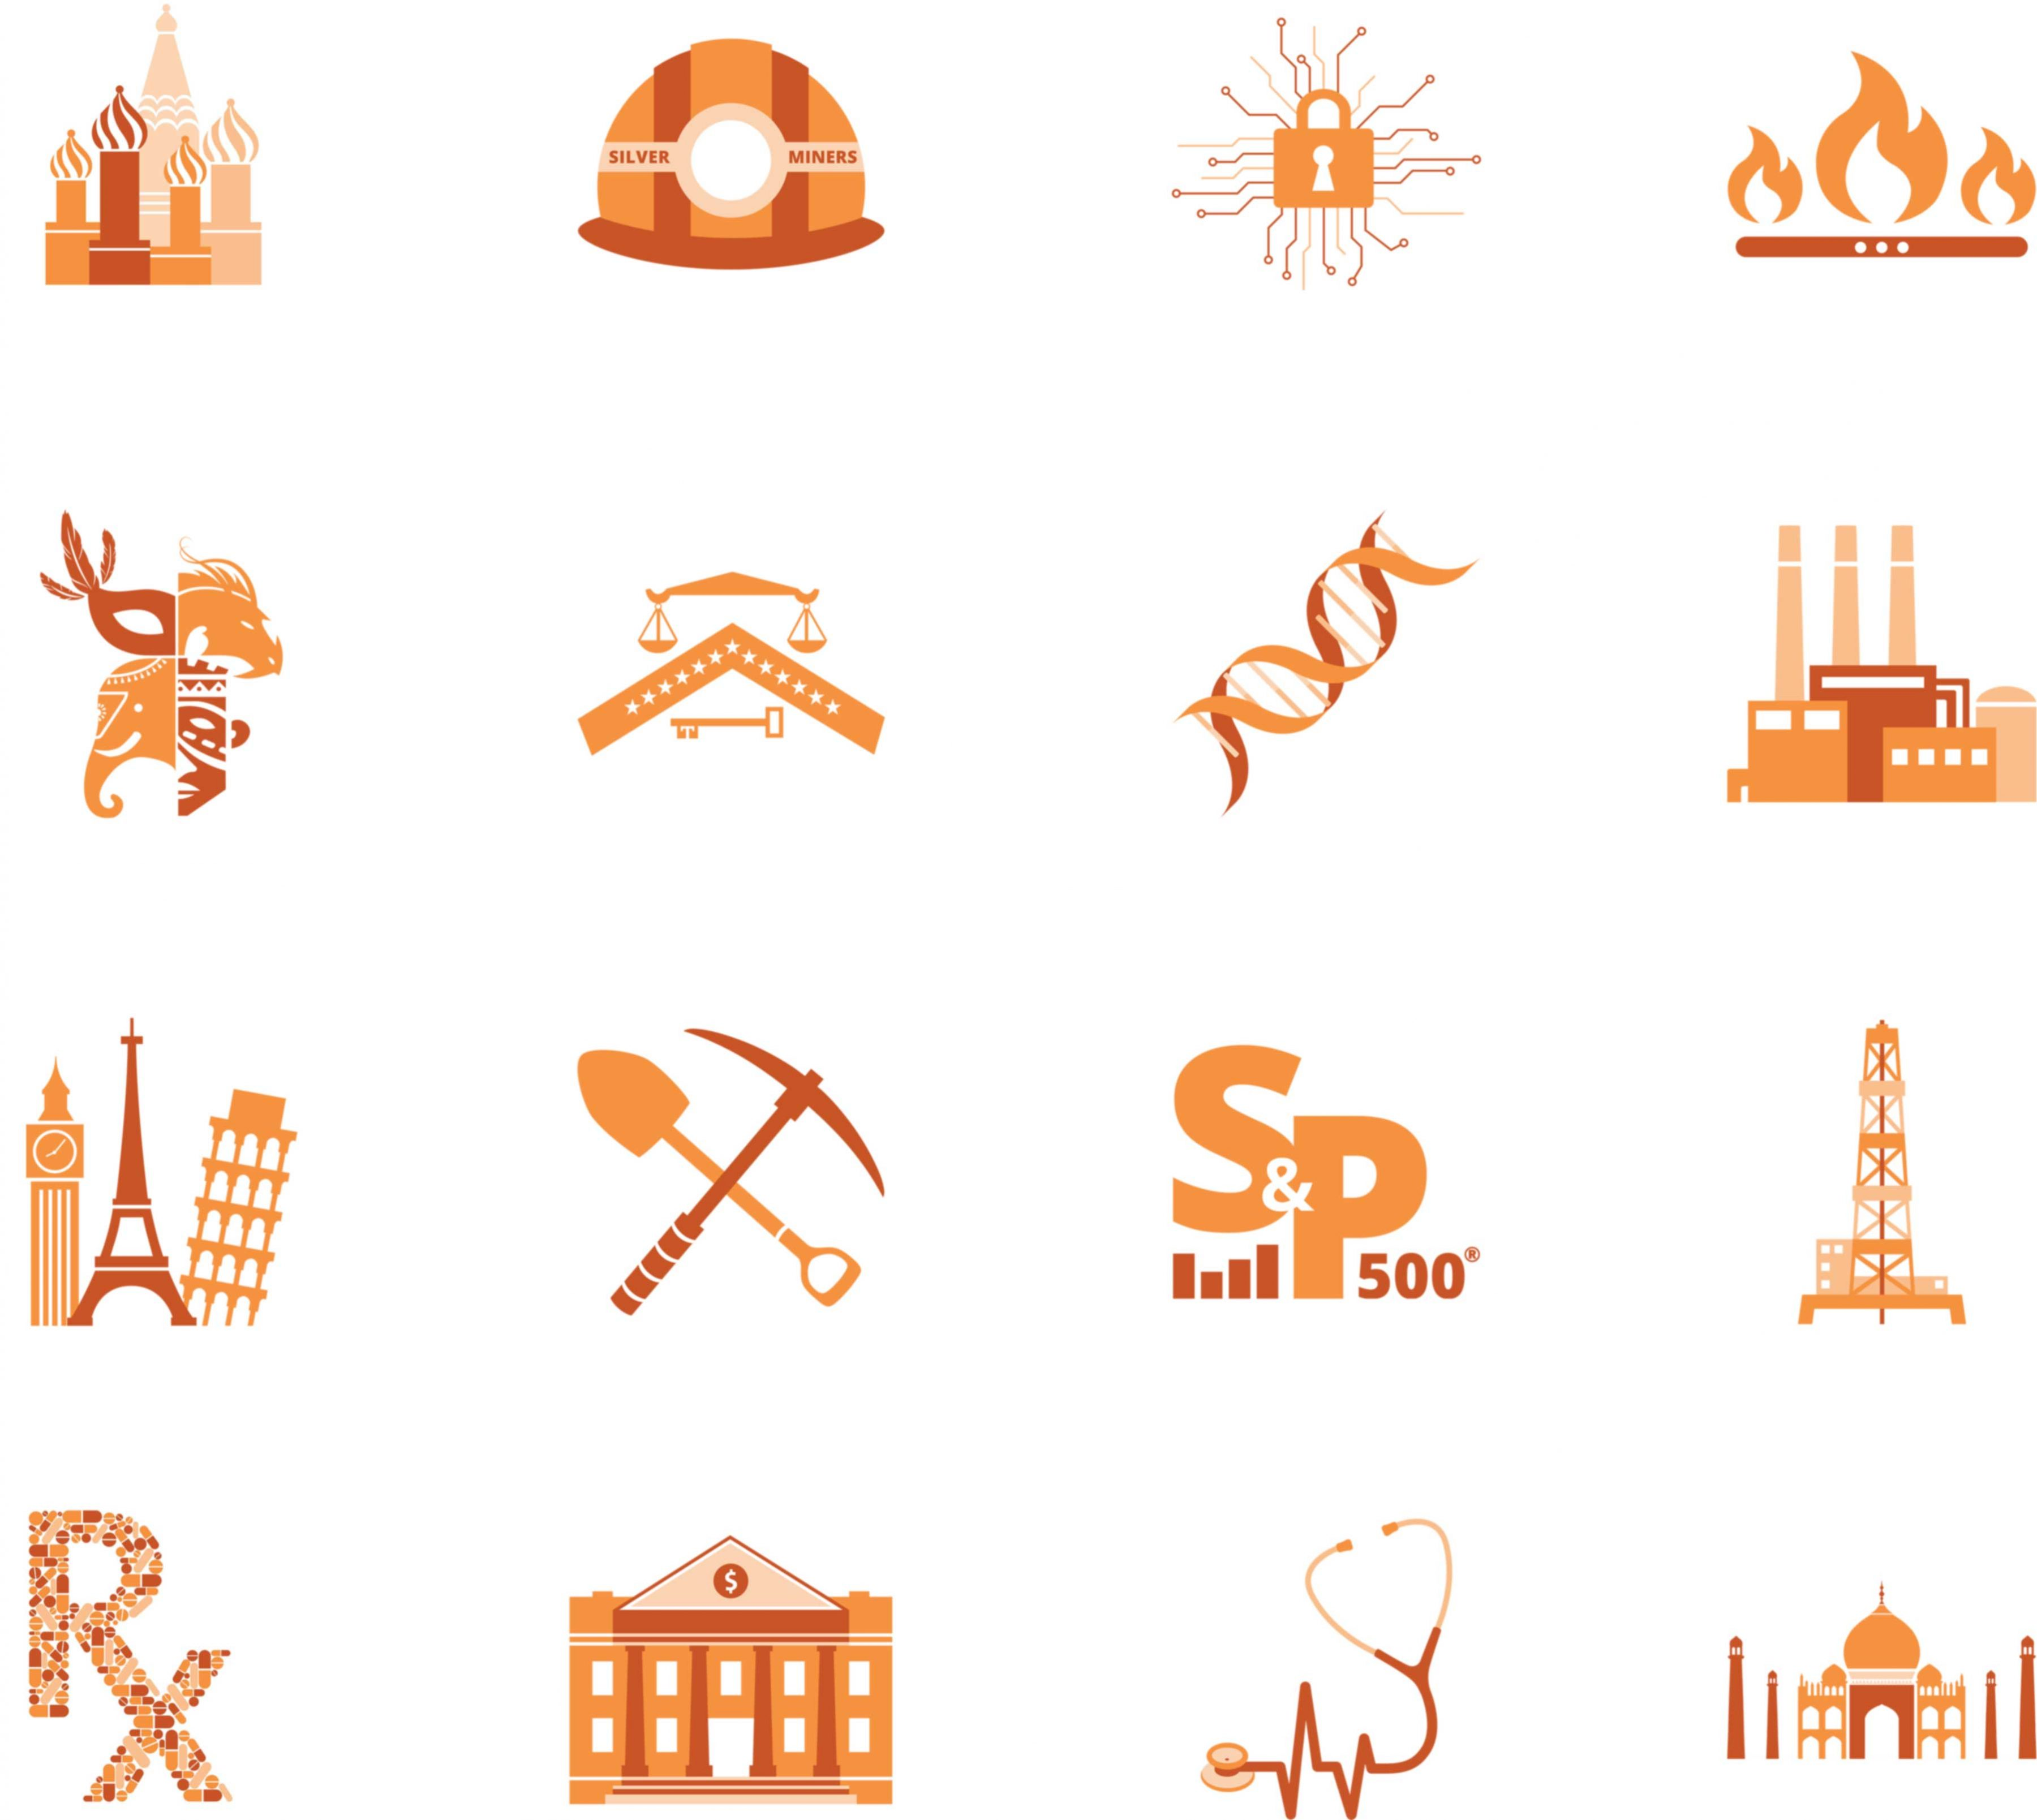 Direxion ETF Campaign logos: Russian architecture, silver miner helmet, lock, flames collage of a mask, a dragon, and elephant, and another mask, scales and a key, DNA, factories, European landmarks, pick axe and shovel, S&P, oil, medication, bank, stethoscope, Taj Mahal